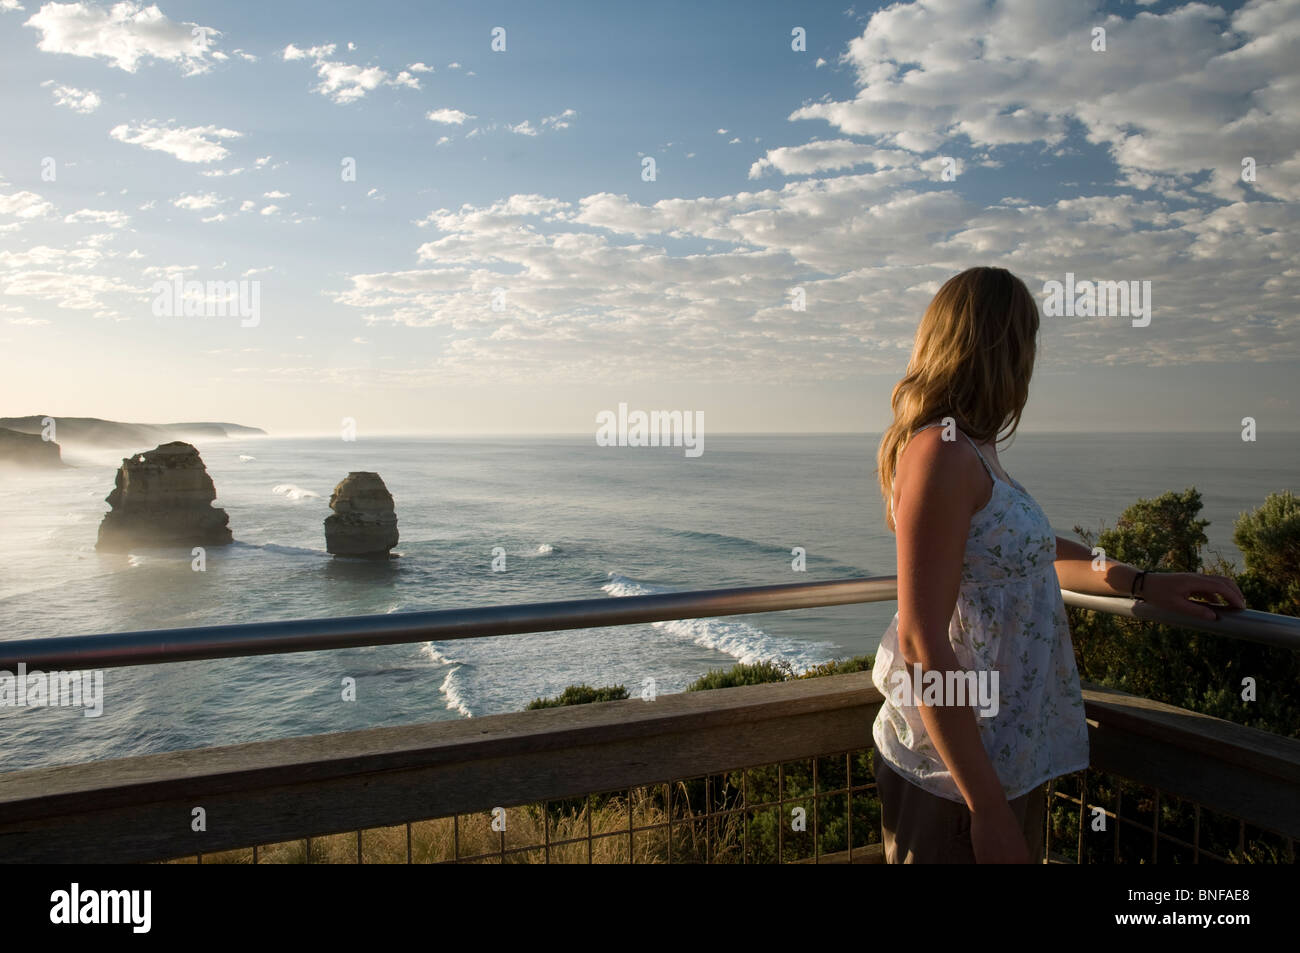 Woman standing on a balcony with the coastline of The Twelve Apostles in the background - Stock Image